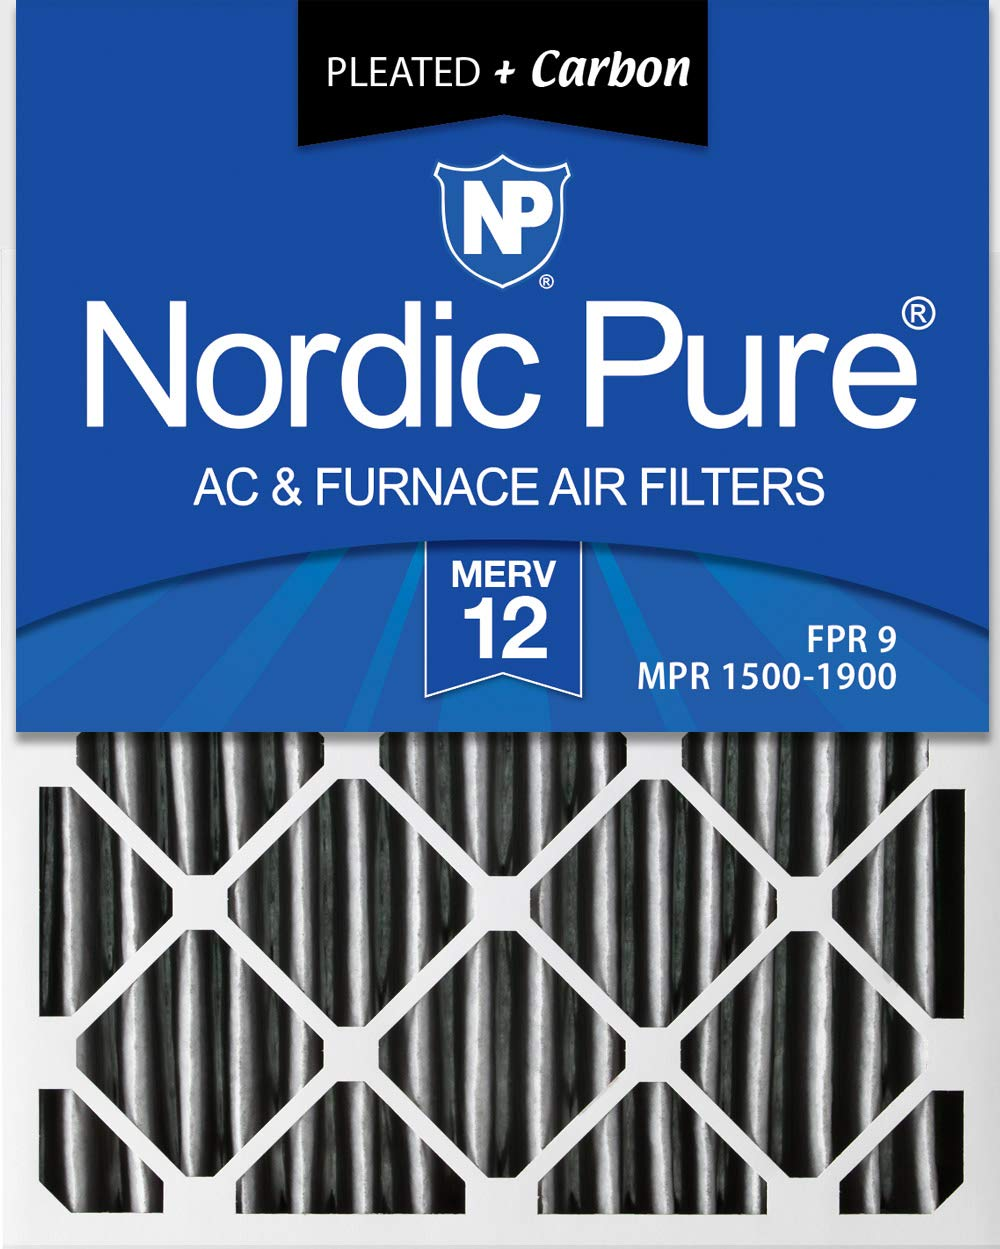 Nordic Pure 18x36x1 Exact MERV 13 Pleated AC Furnace Air Filters 4 Pack